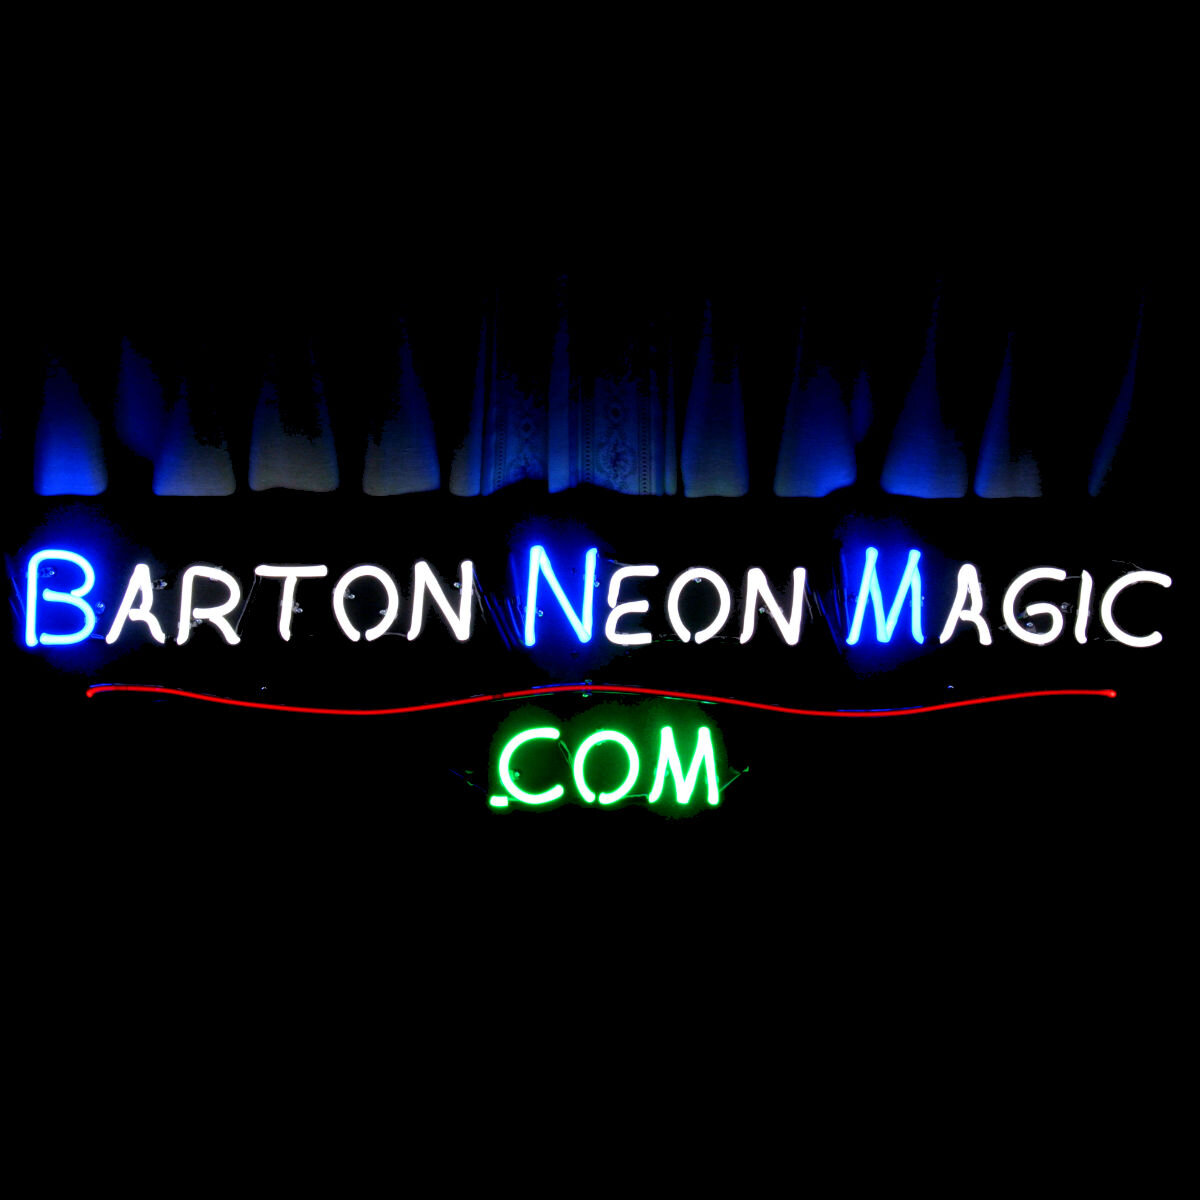 BartonNeonMagic.com - THE ULTIMATE in DESIGNER NEON LIGHT ART! - by John Barton - Famous American Neon Glass Artist